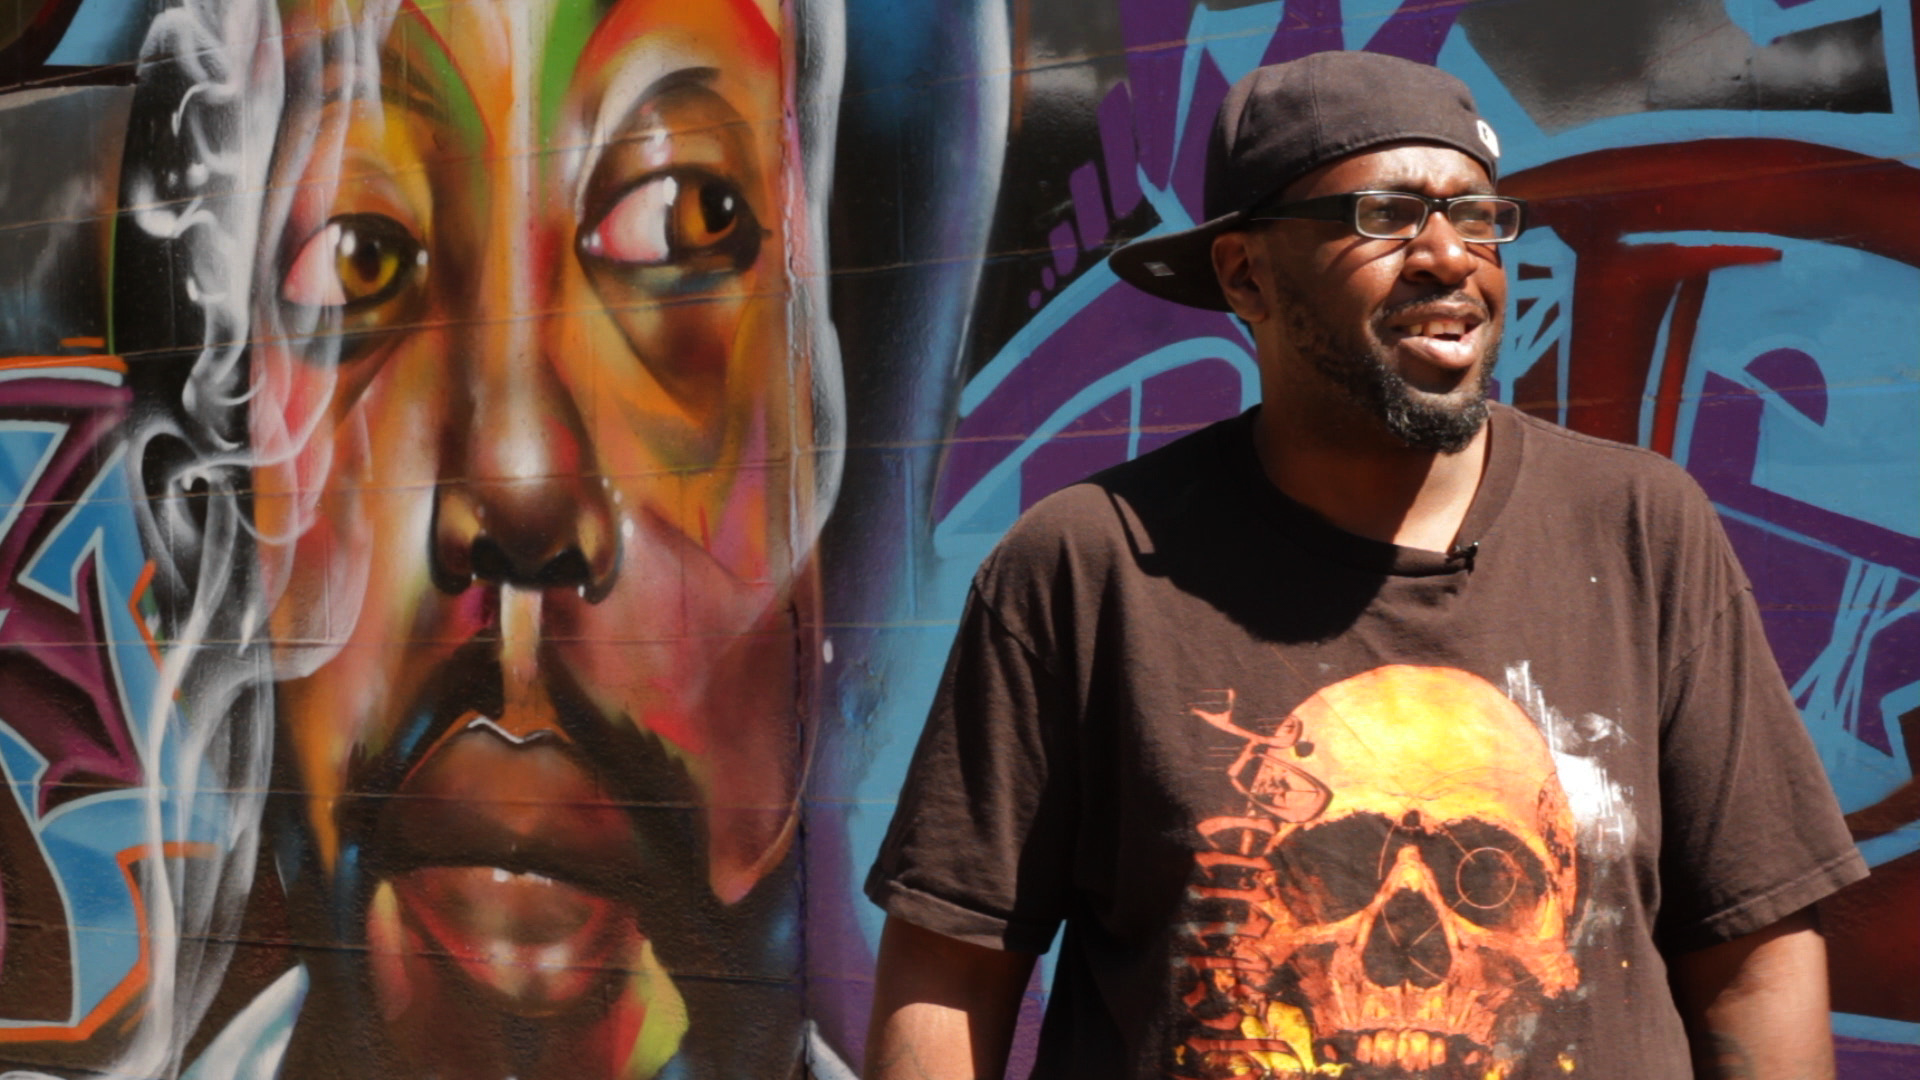 Will Condry, known as Kasso in the community, stands in front of a large mural he created as the driving force behind an event called New Jersey Fresh Jam, where artists from around the country gather for a hip hop jam and beautification project.